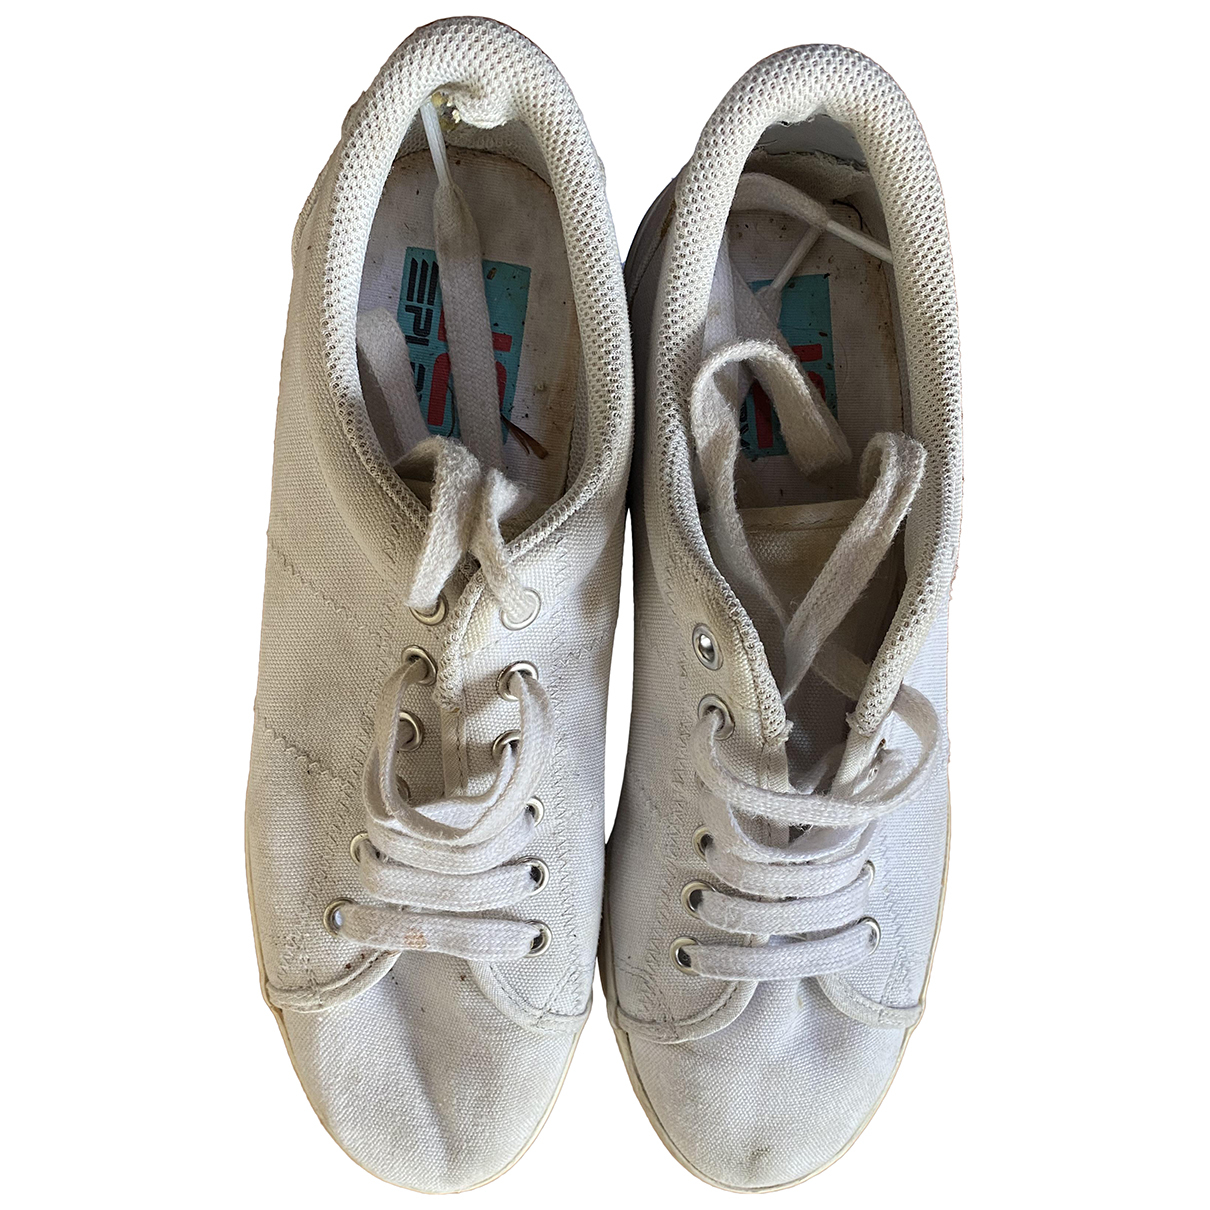 Jeffrey Campbell N White Cloth Trainers for Women 39 EU